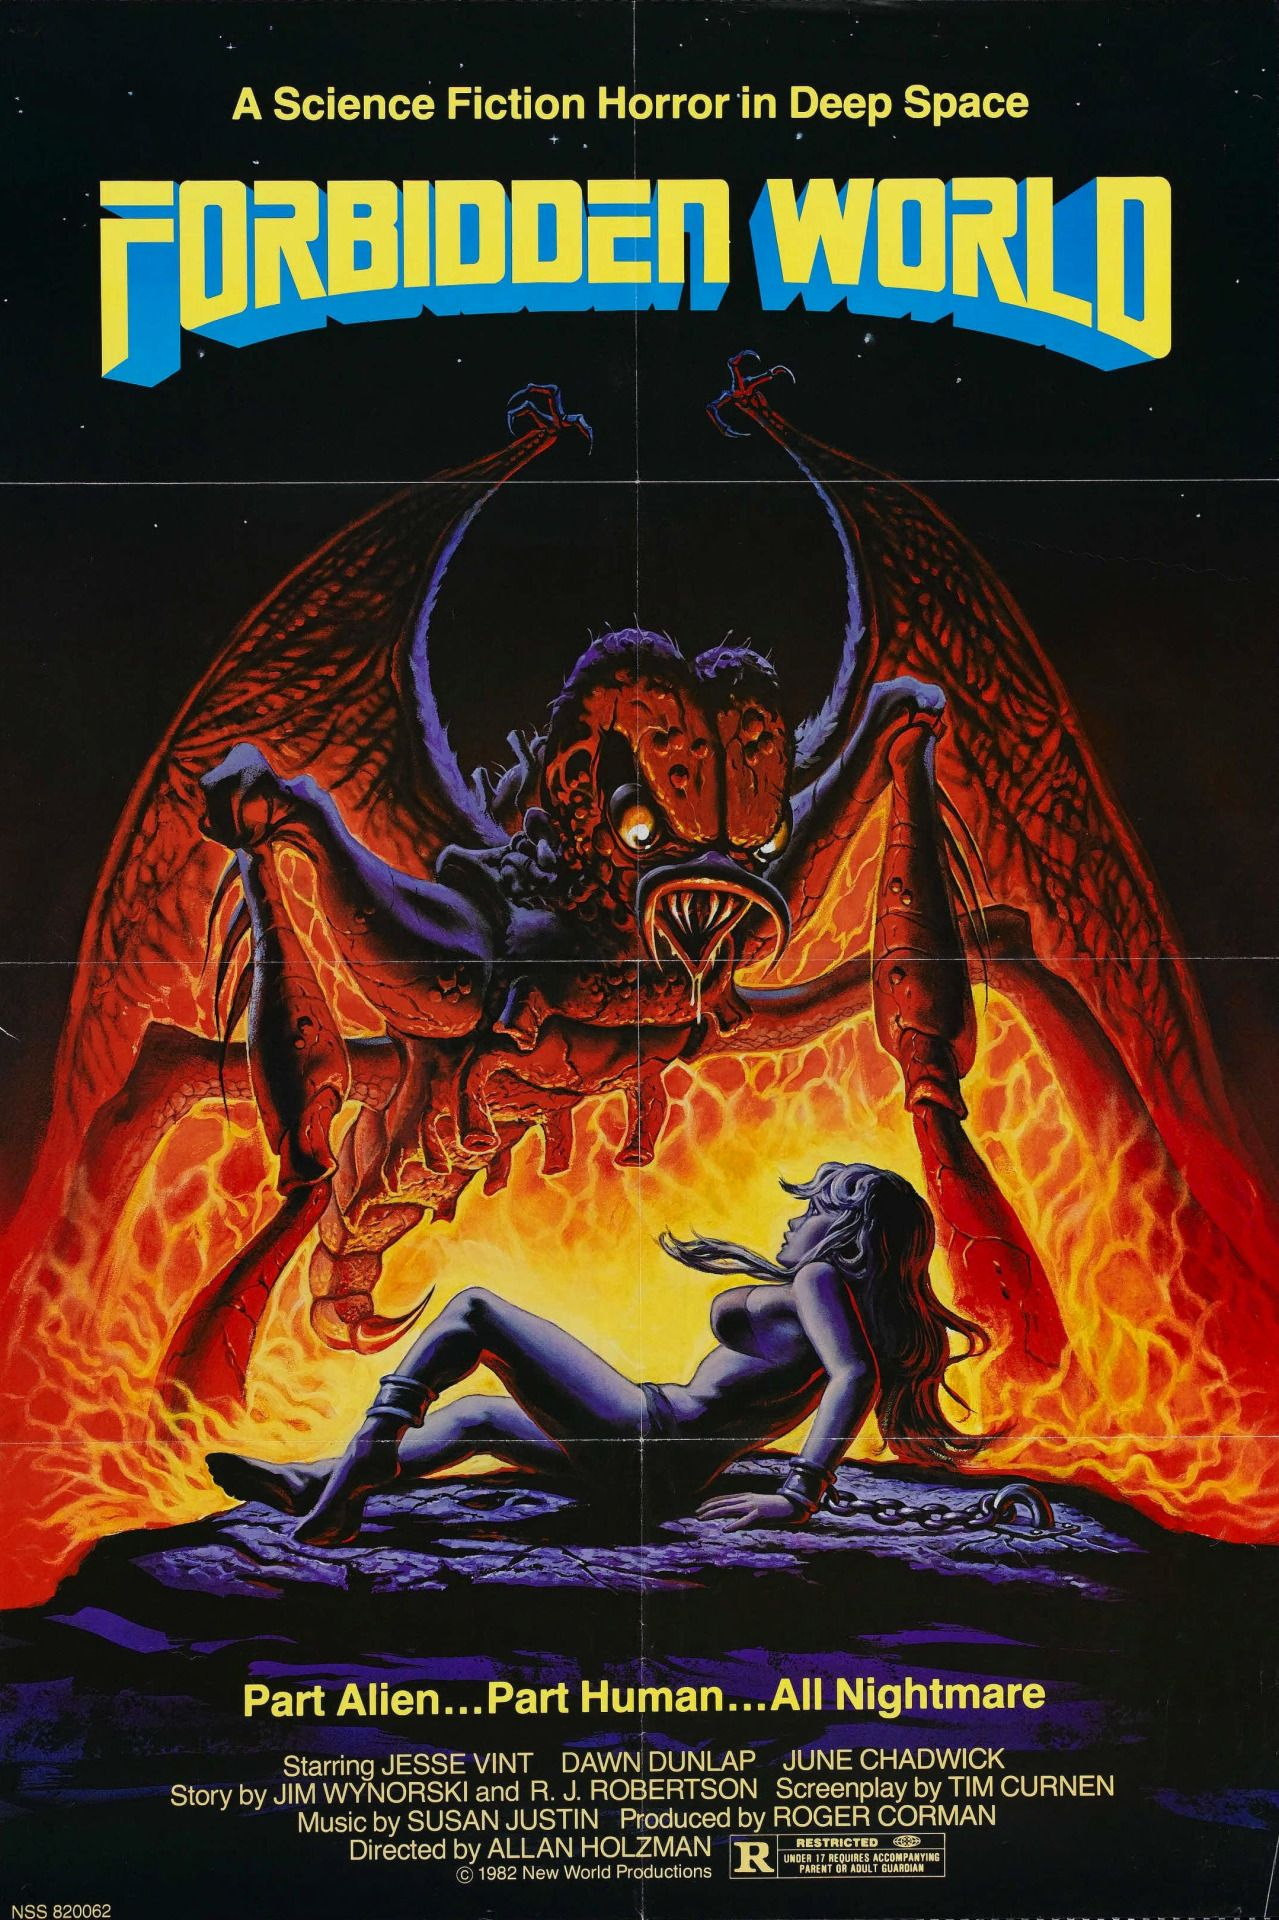 Forbidden World (1982) Science fiction movie posters